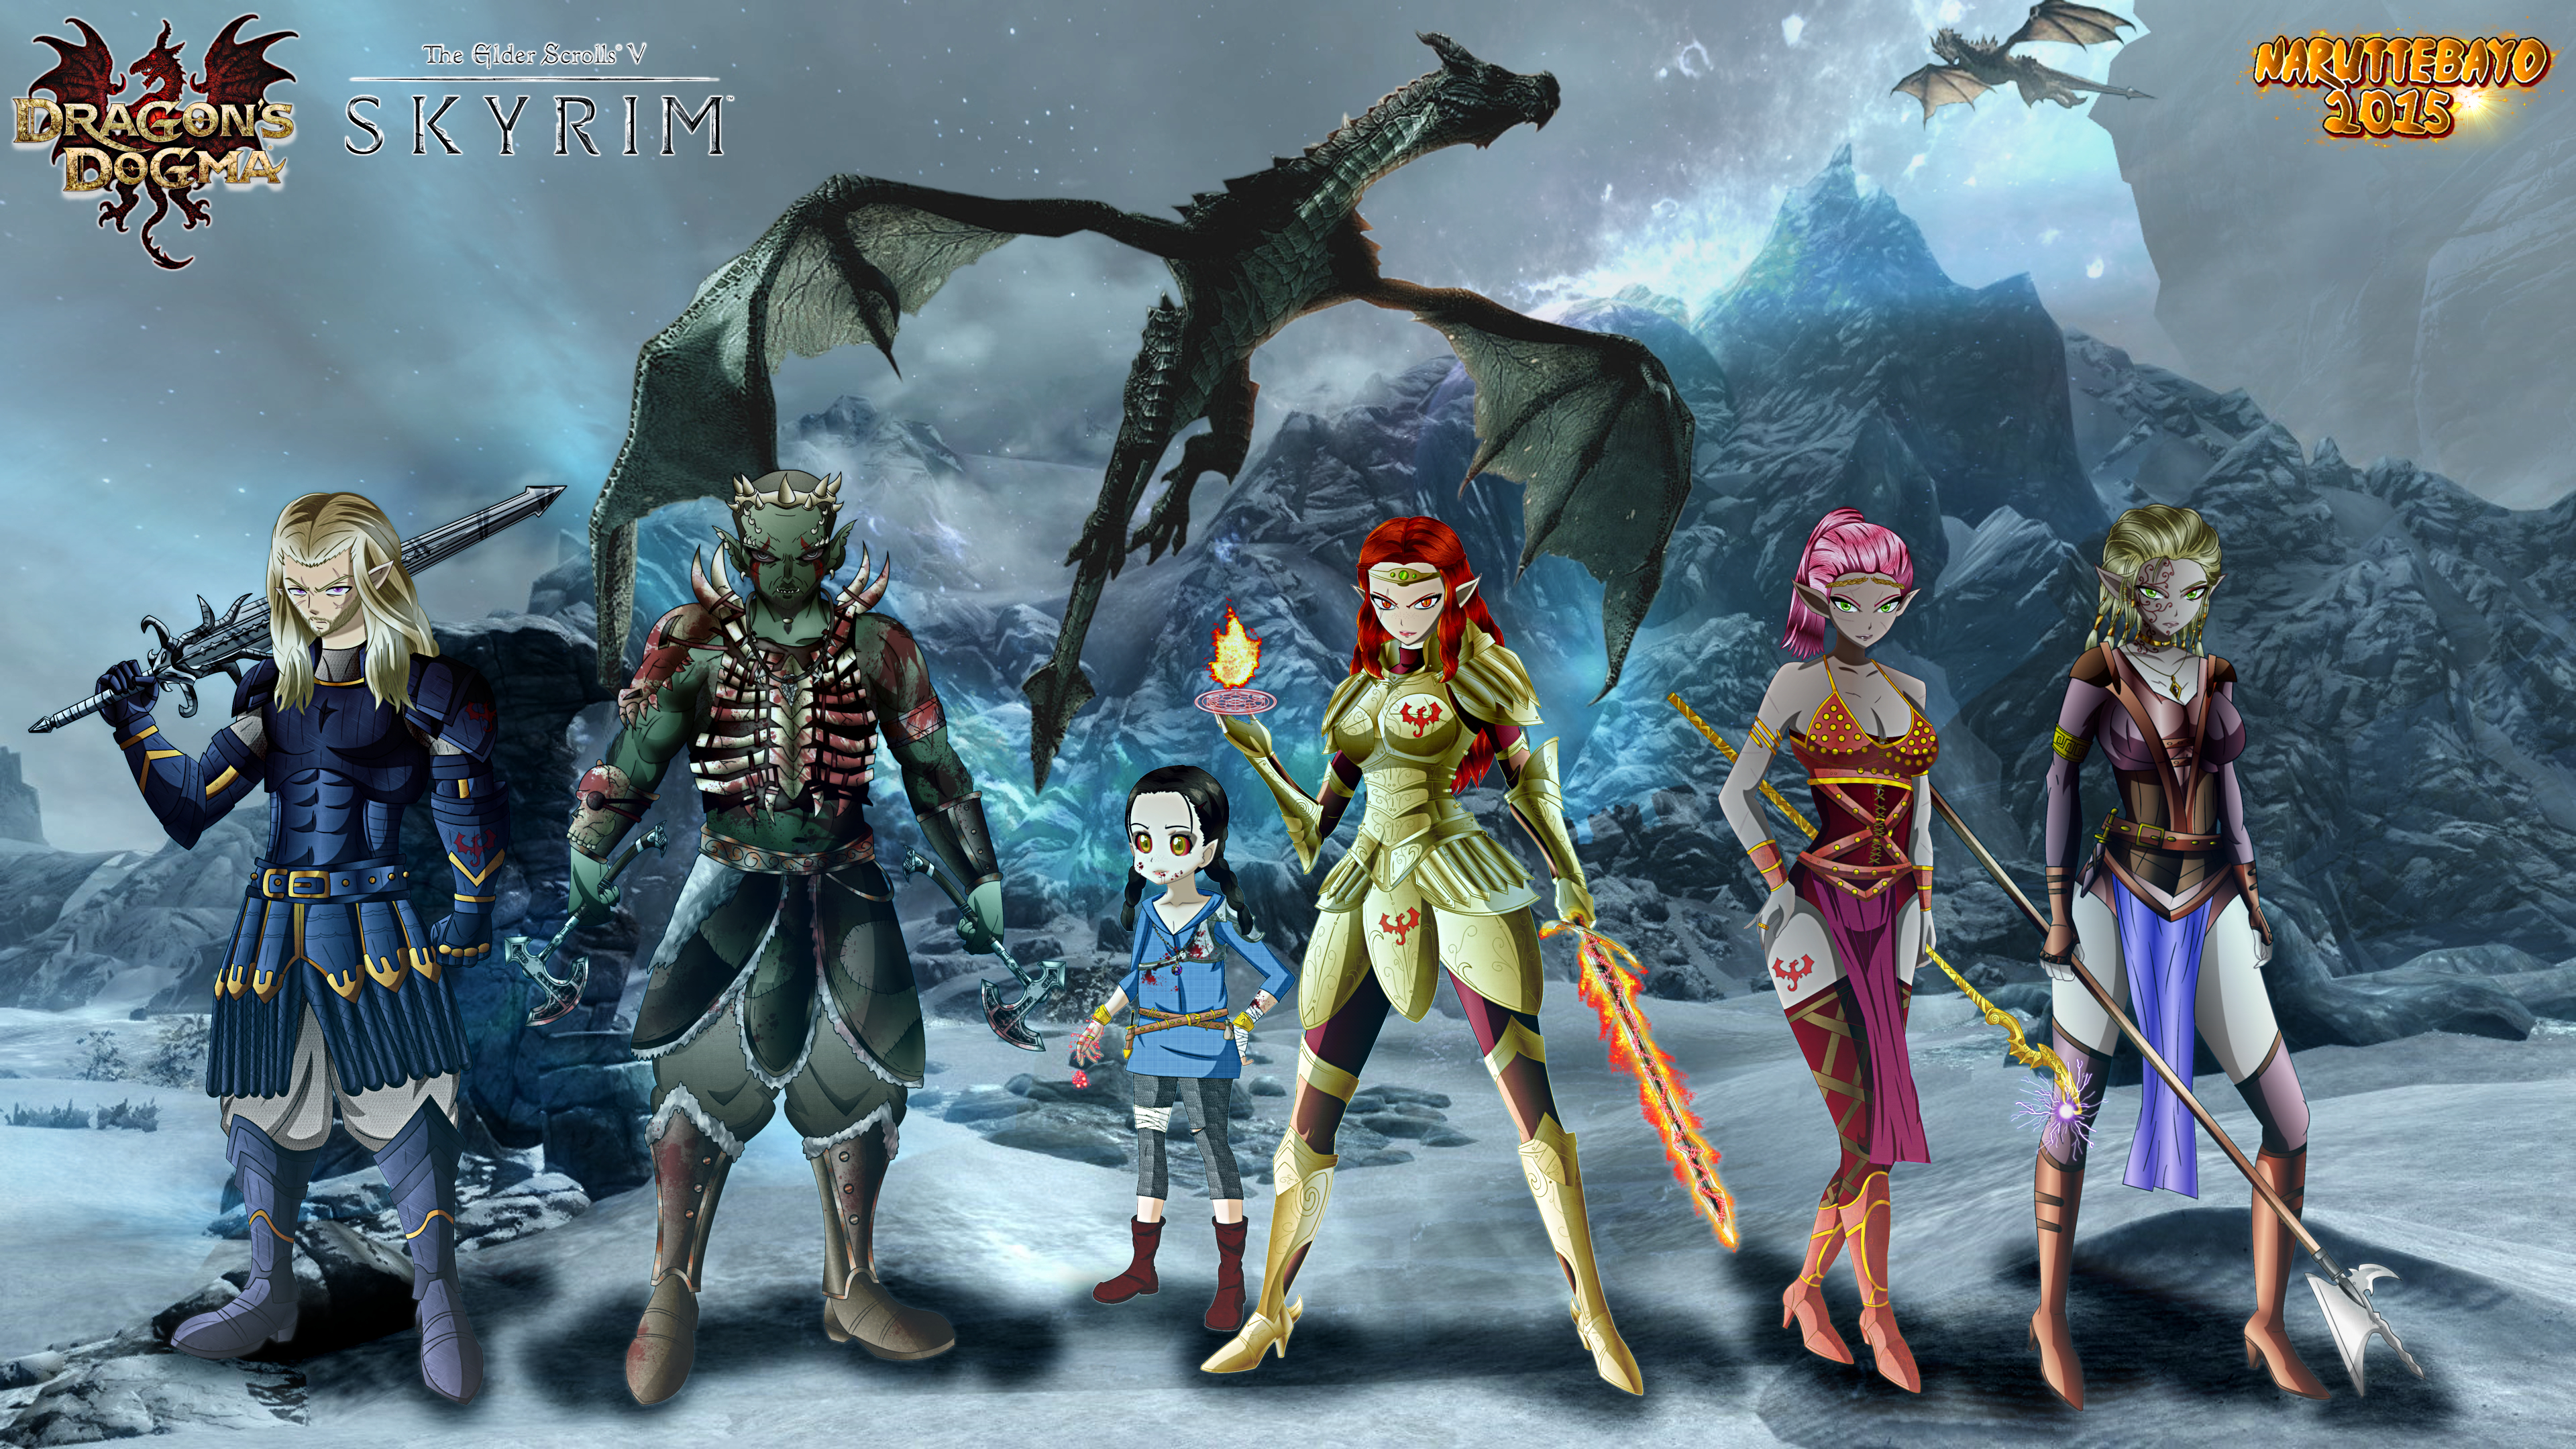 Oc Rpg Dragons Dogma X Skyrim Wallpaper By Naruttebayo67 On